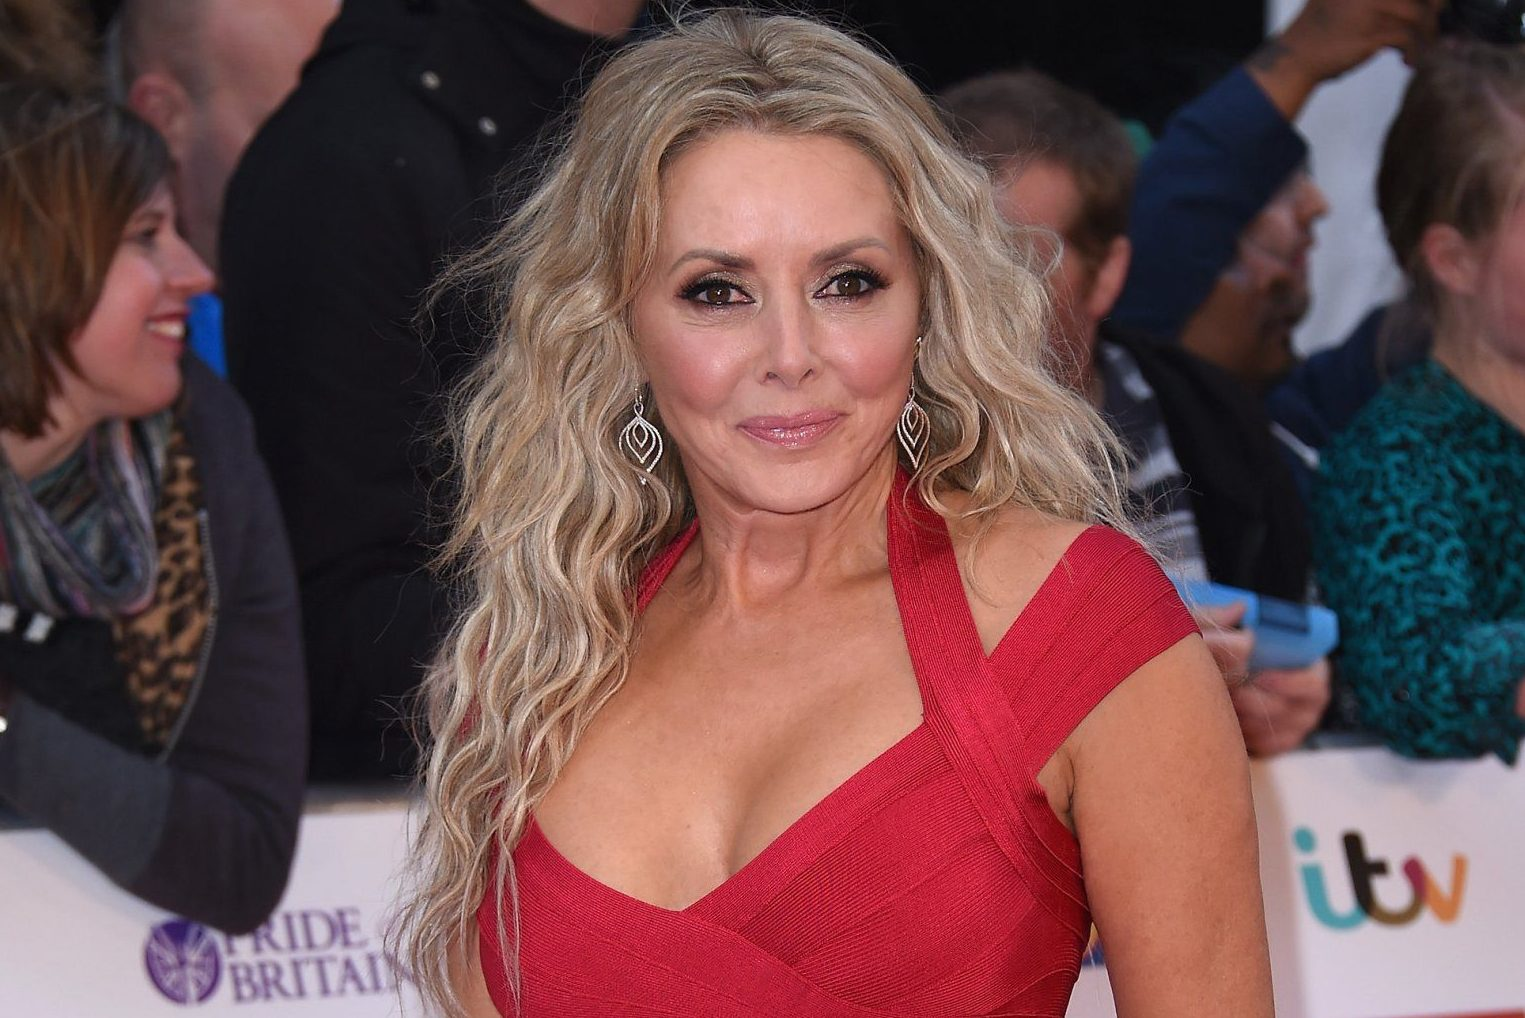 Carol Vorderman is loving the single life at 57 as she claims she doesn't want to be 'saddled with a bloke'